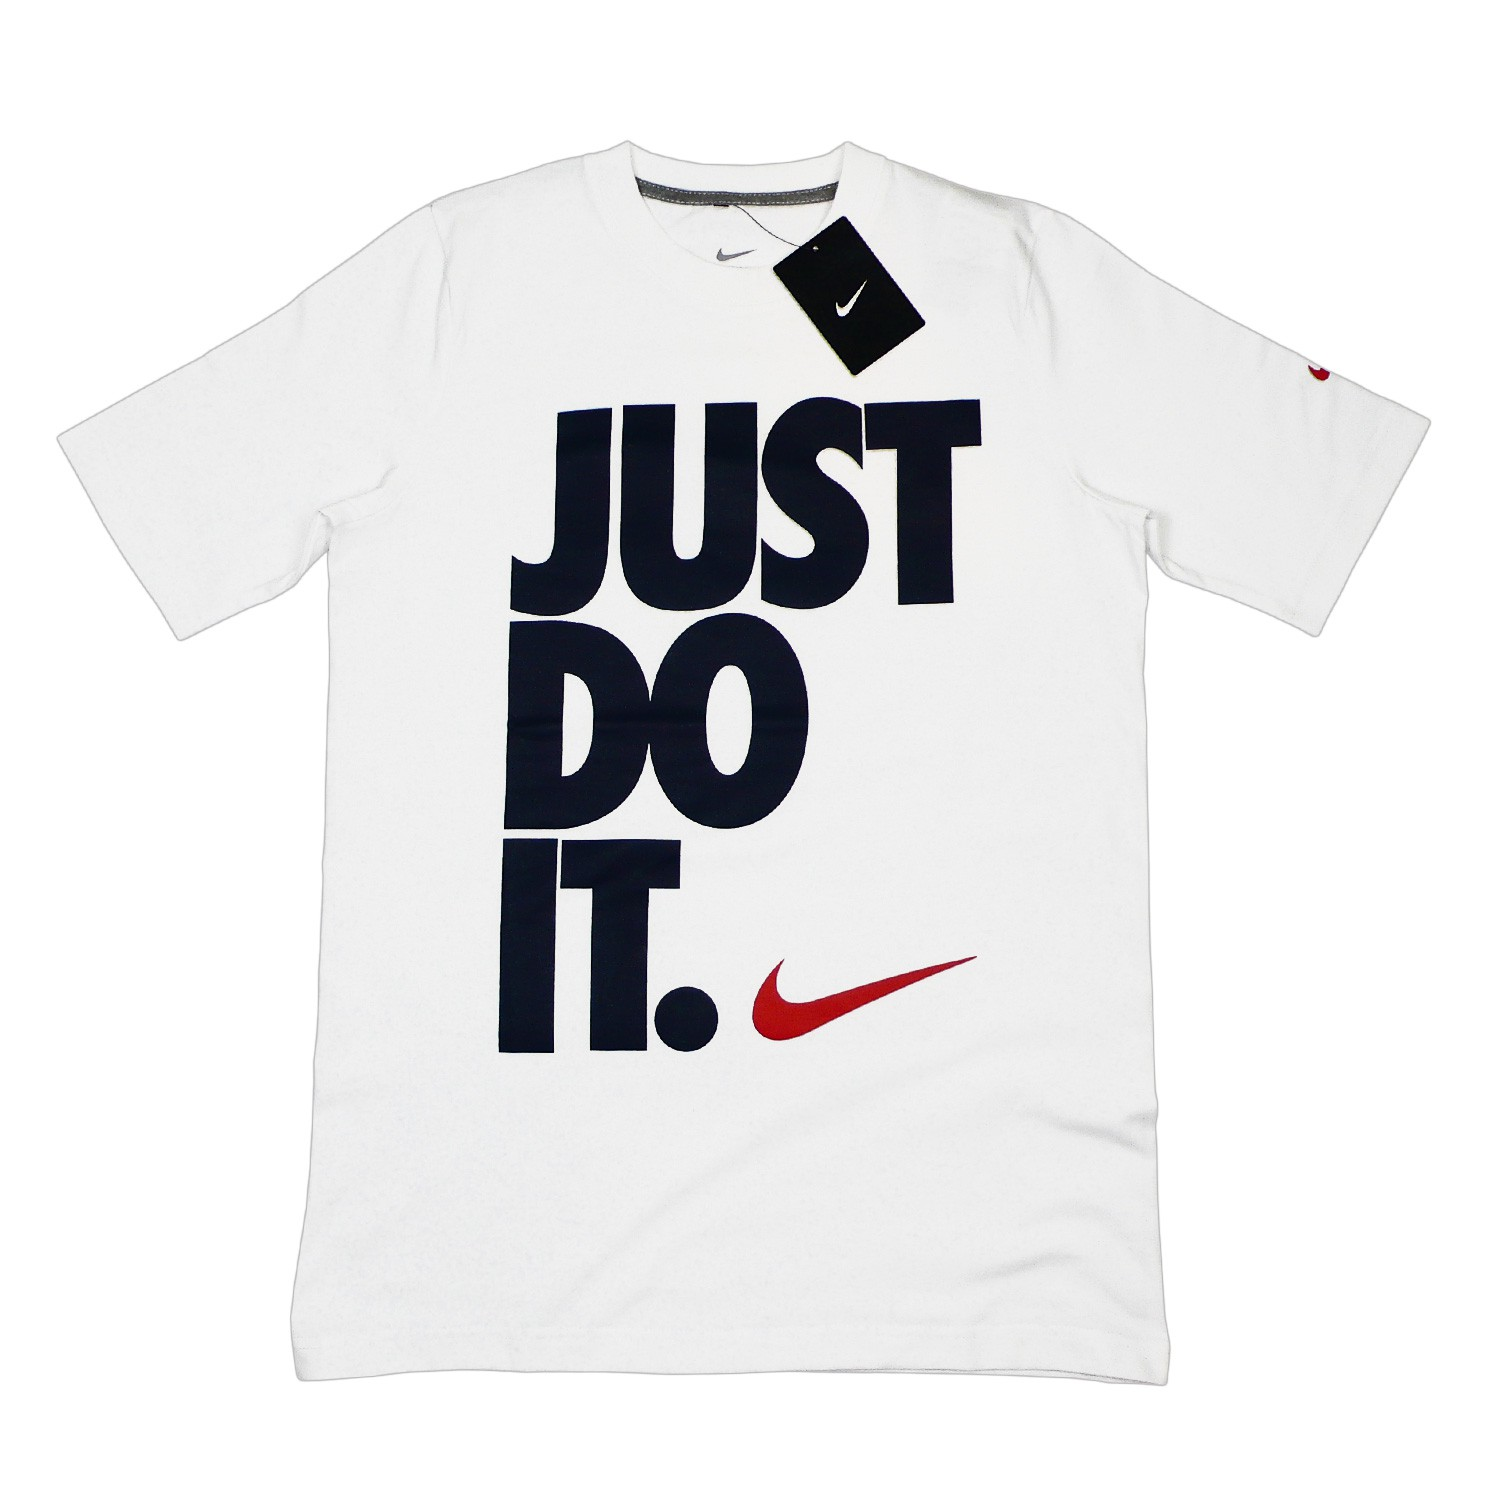 nike just do it t shirt men 39 s t shirt white black retro slim fit s xl. Black Bedroom Furniture Sets. Home Design Ideas